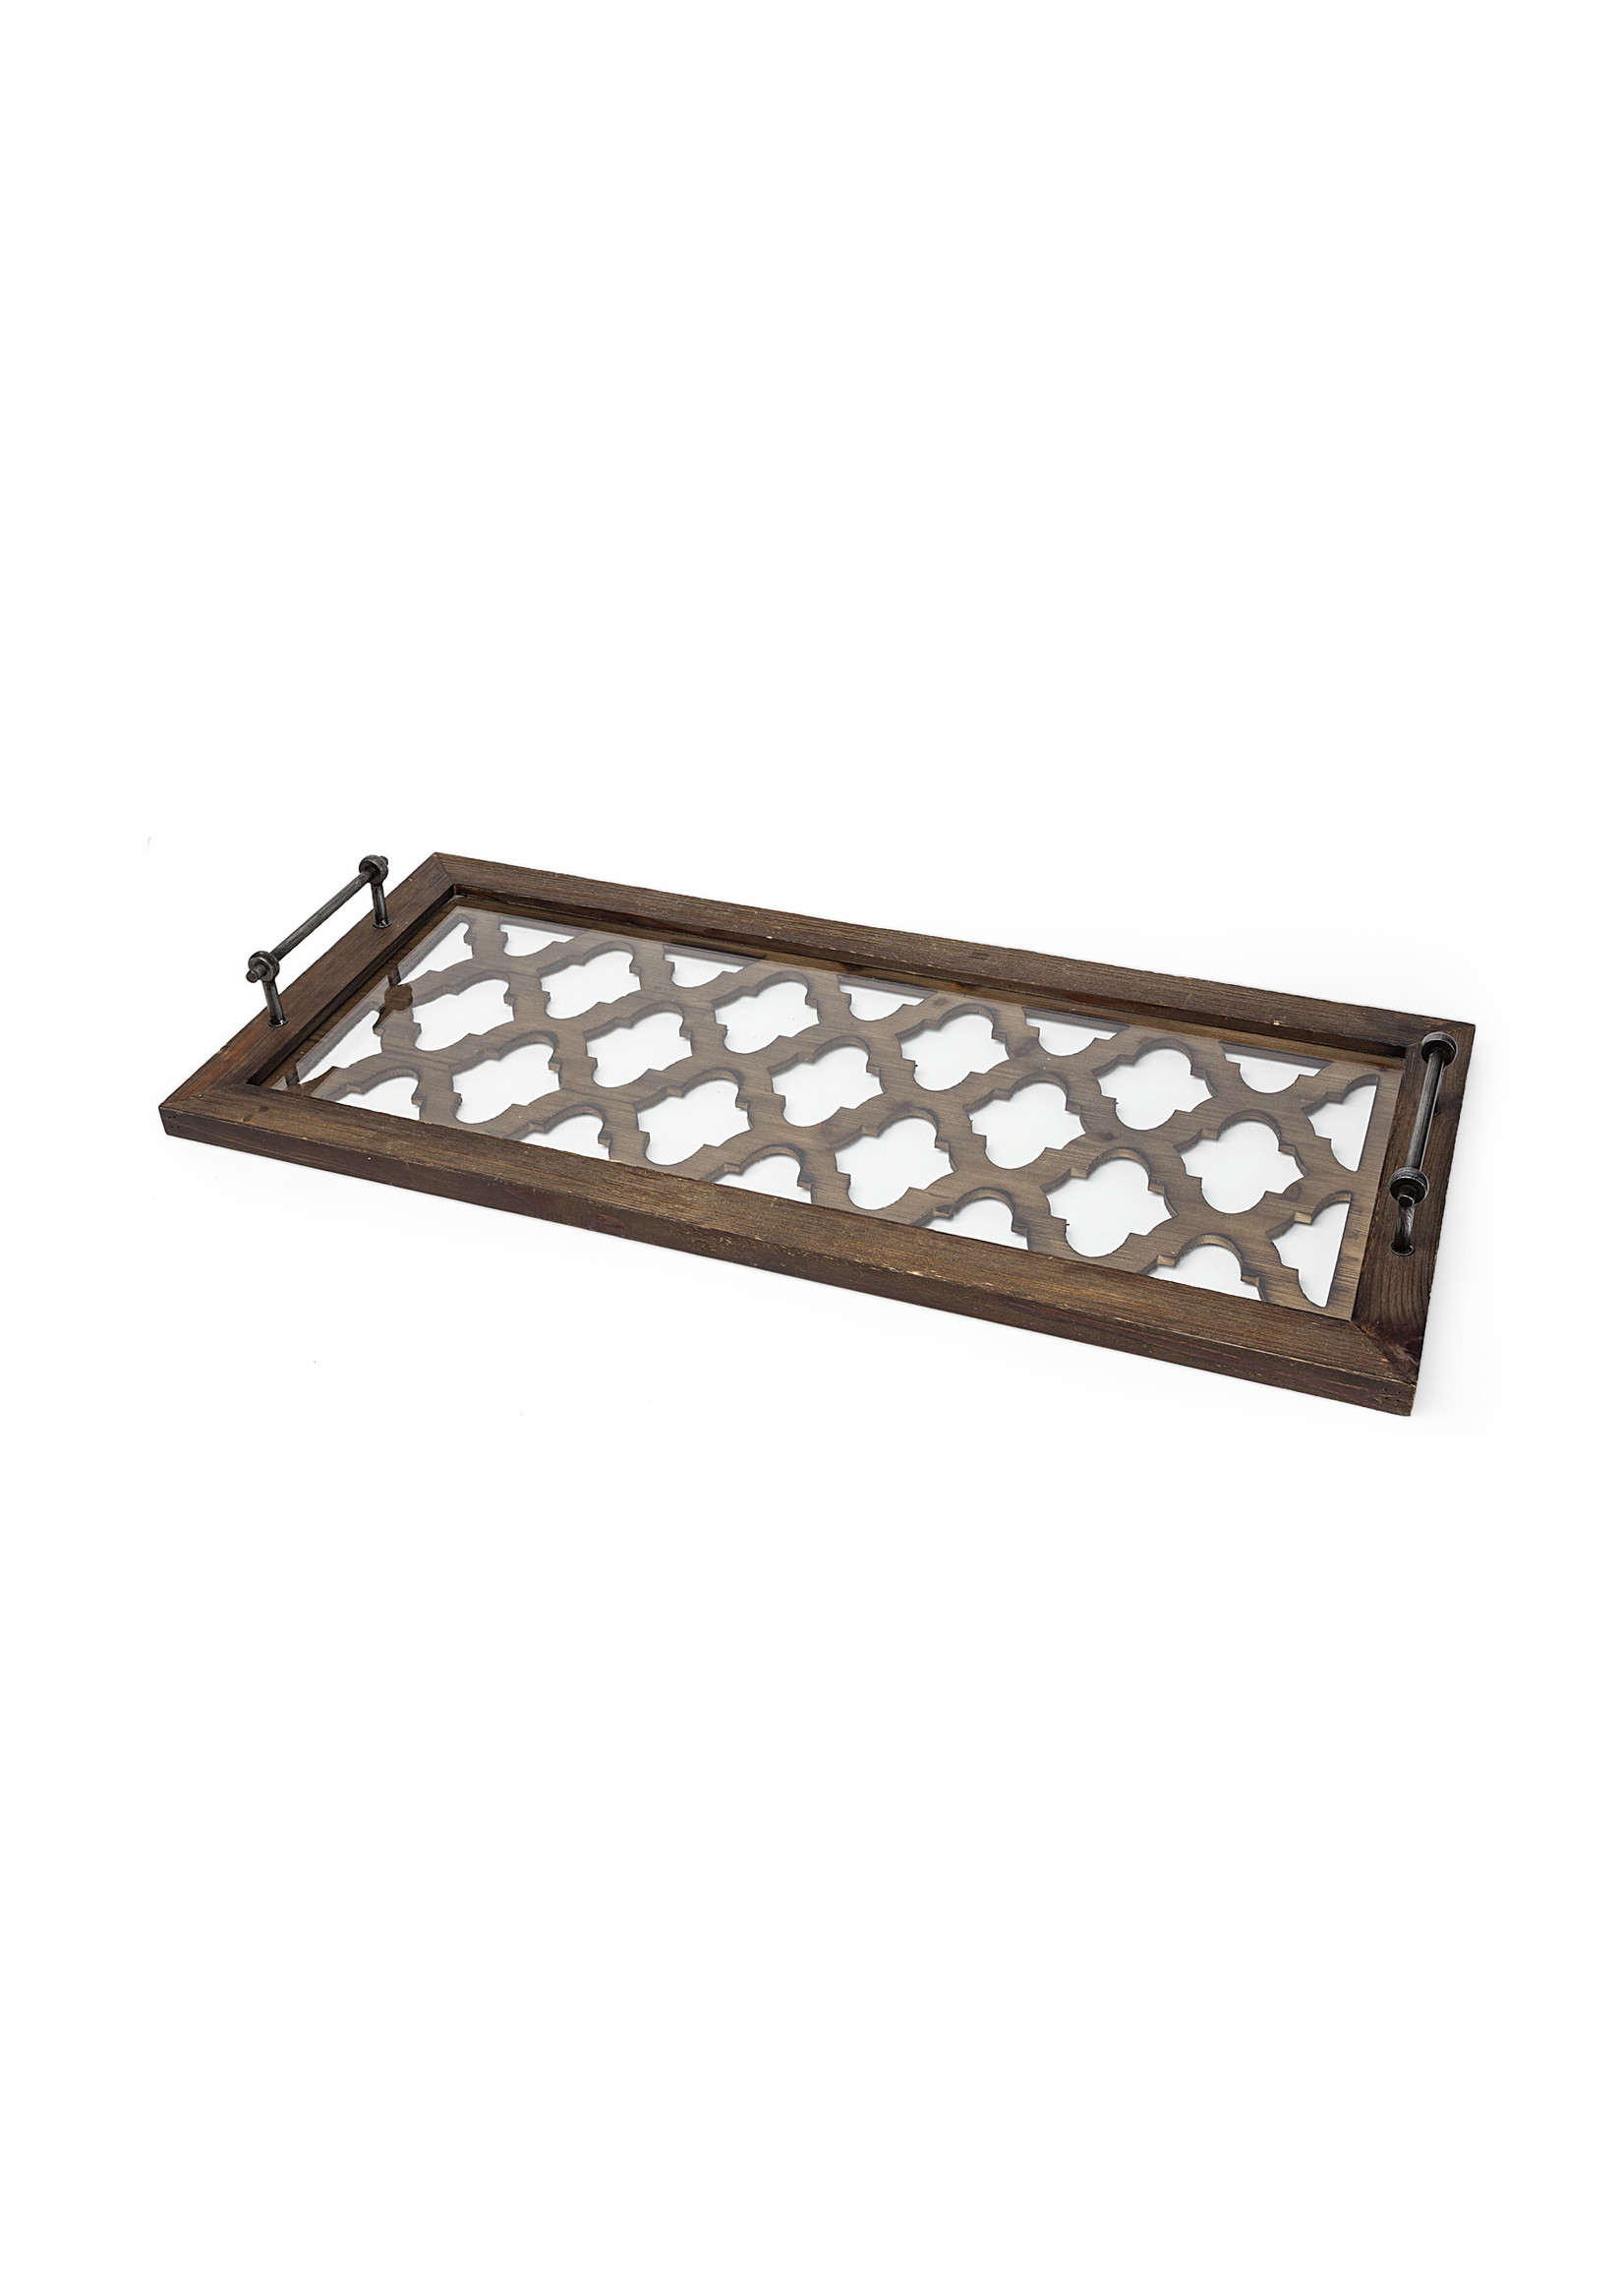 BROWN WOOD GLASS TOP RECT. SERVING TRAY 35x16